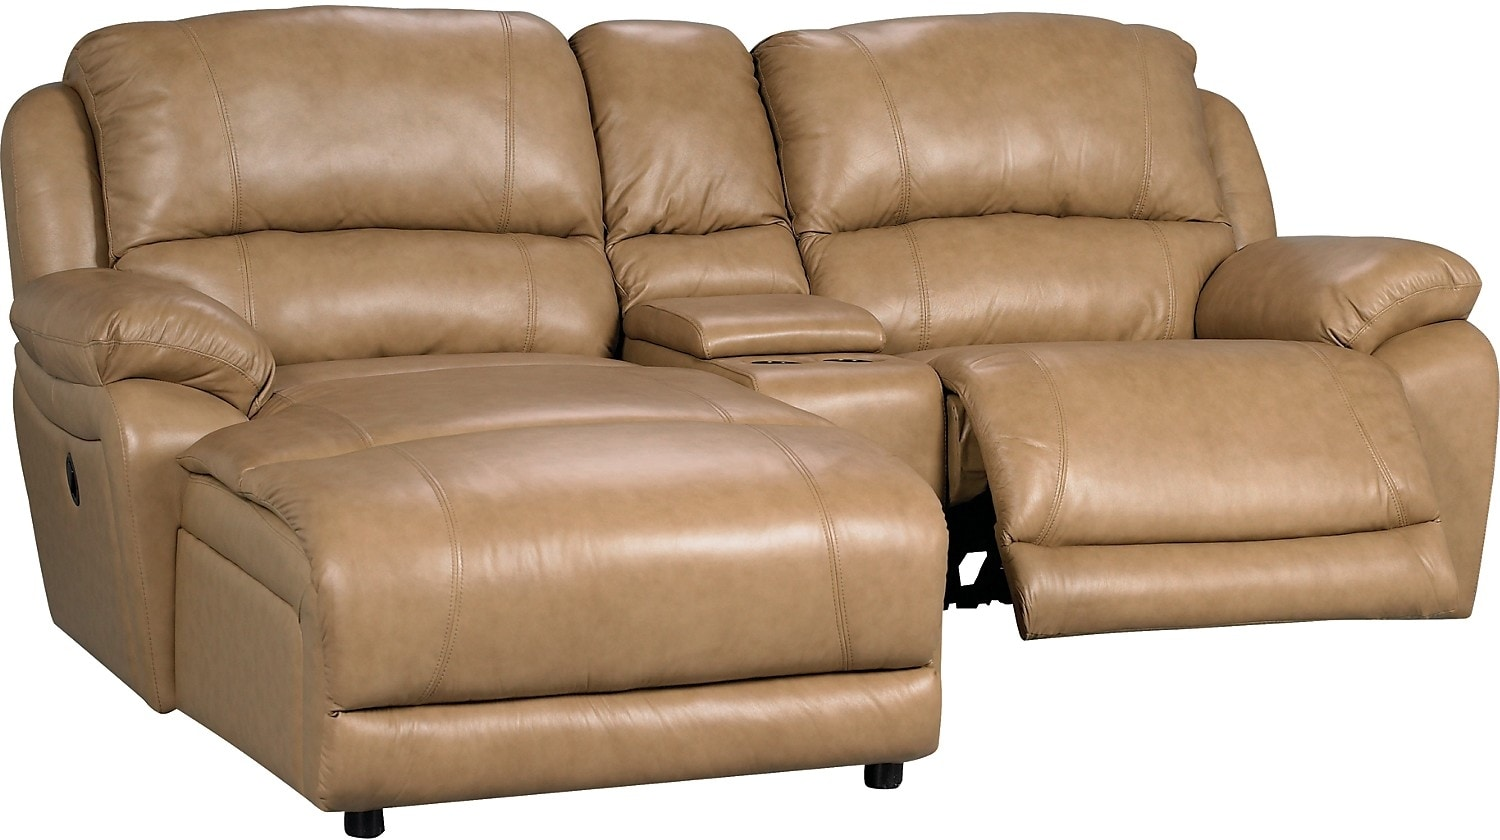 the brick cindy crawford reclining sofa old leather repair marco genuine 3 piece sectional with chaise power